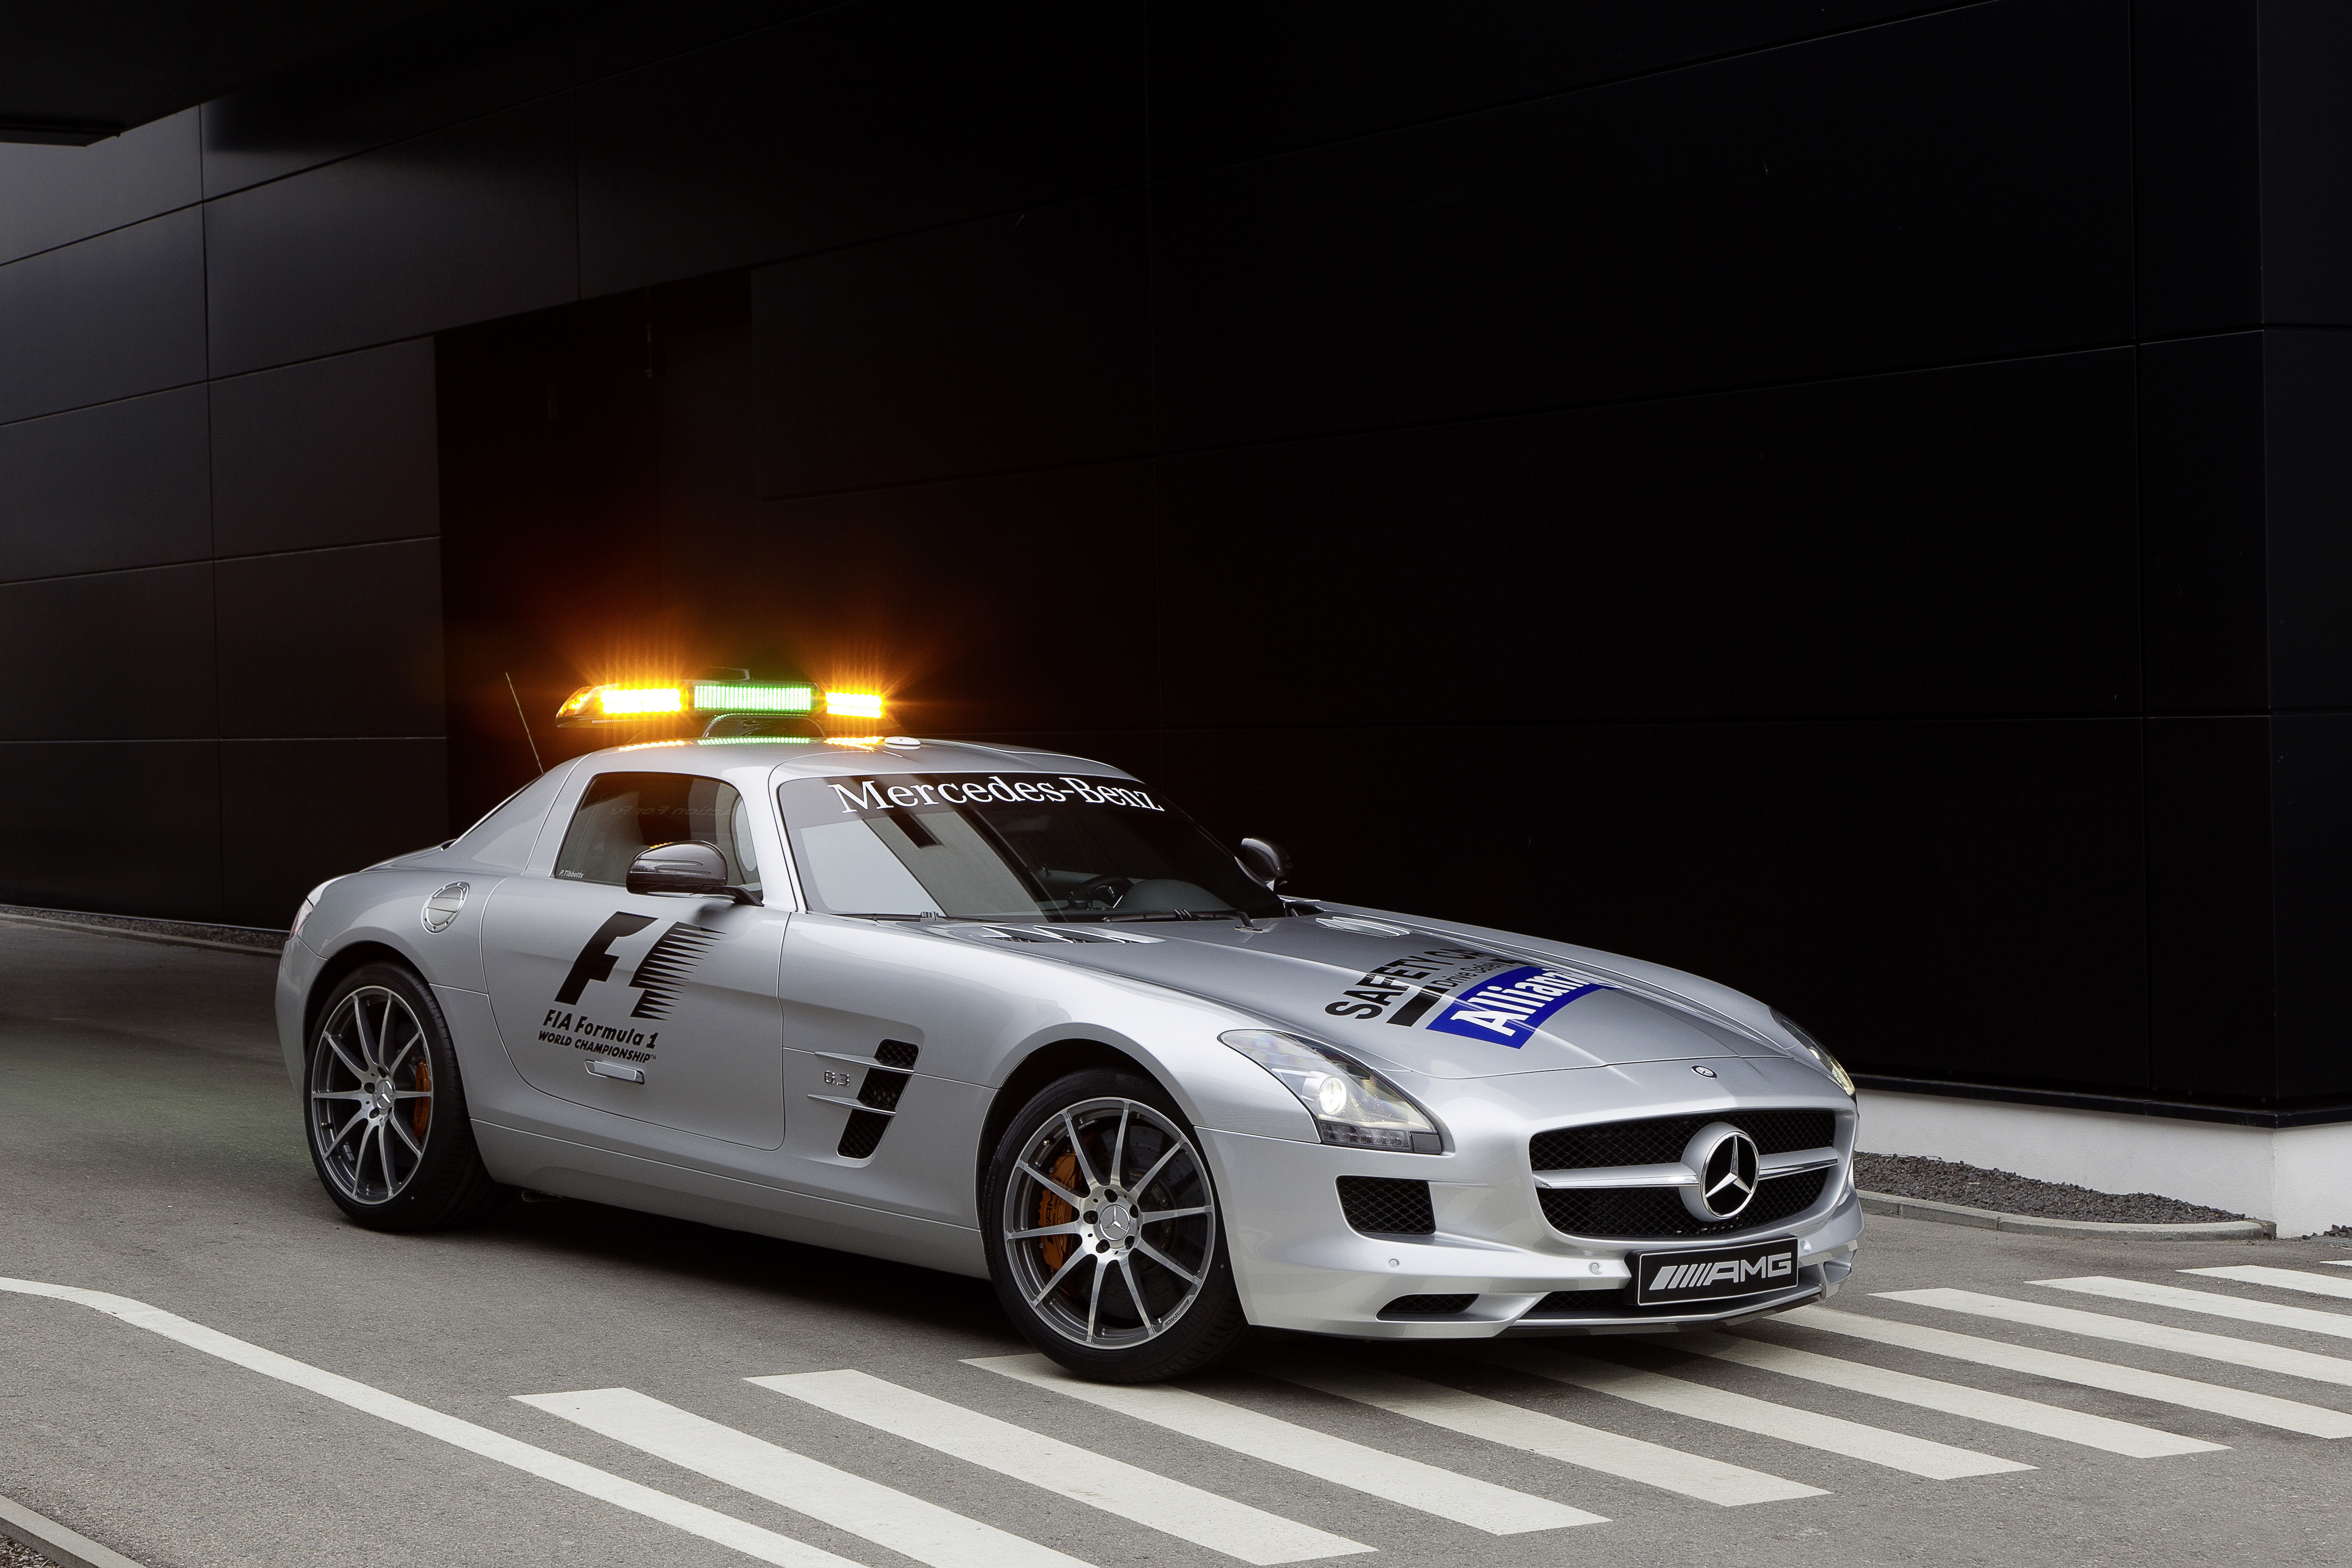 Mercedes amg official f1 safety car medical car photo for Mercedes benz car images